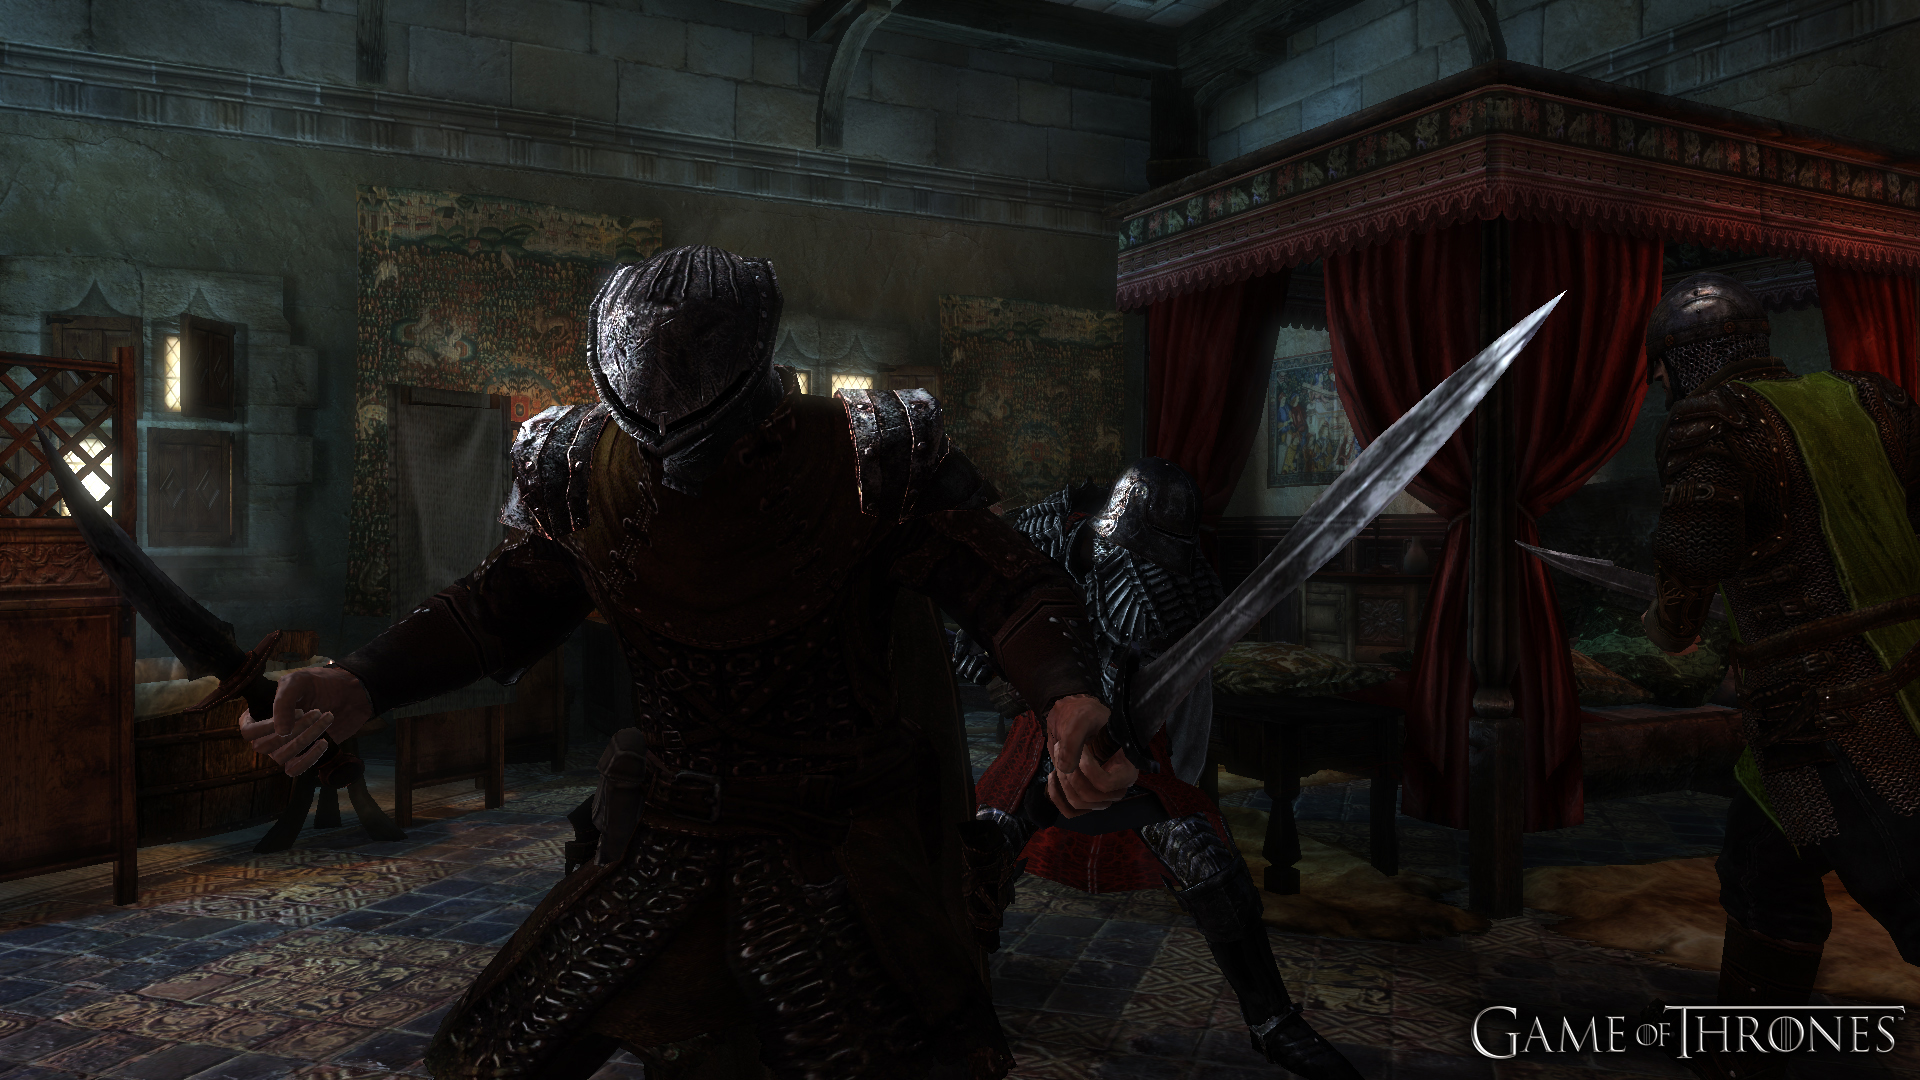 game of thrones genesis pc game free download